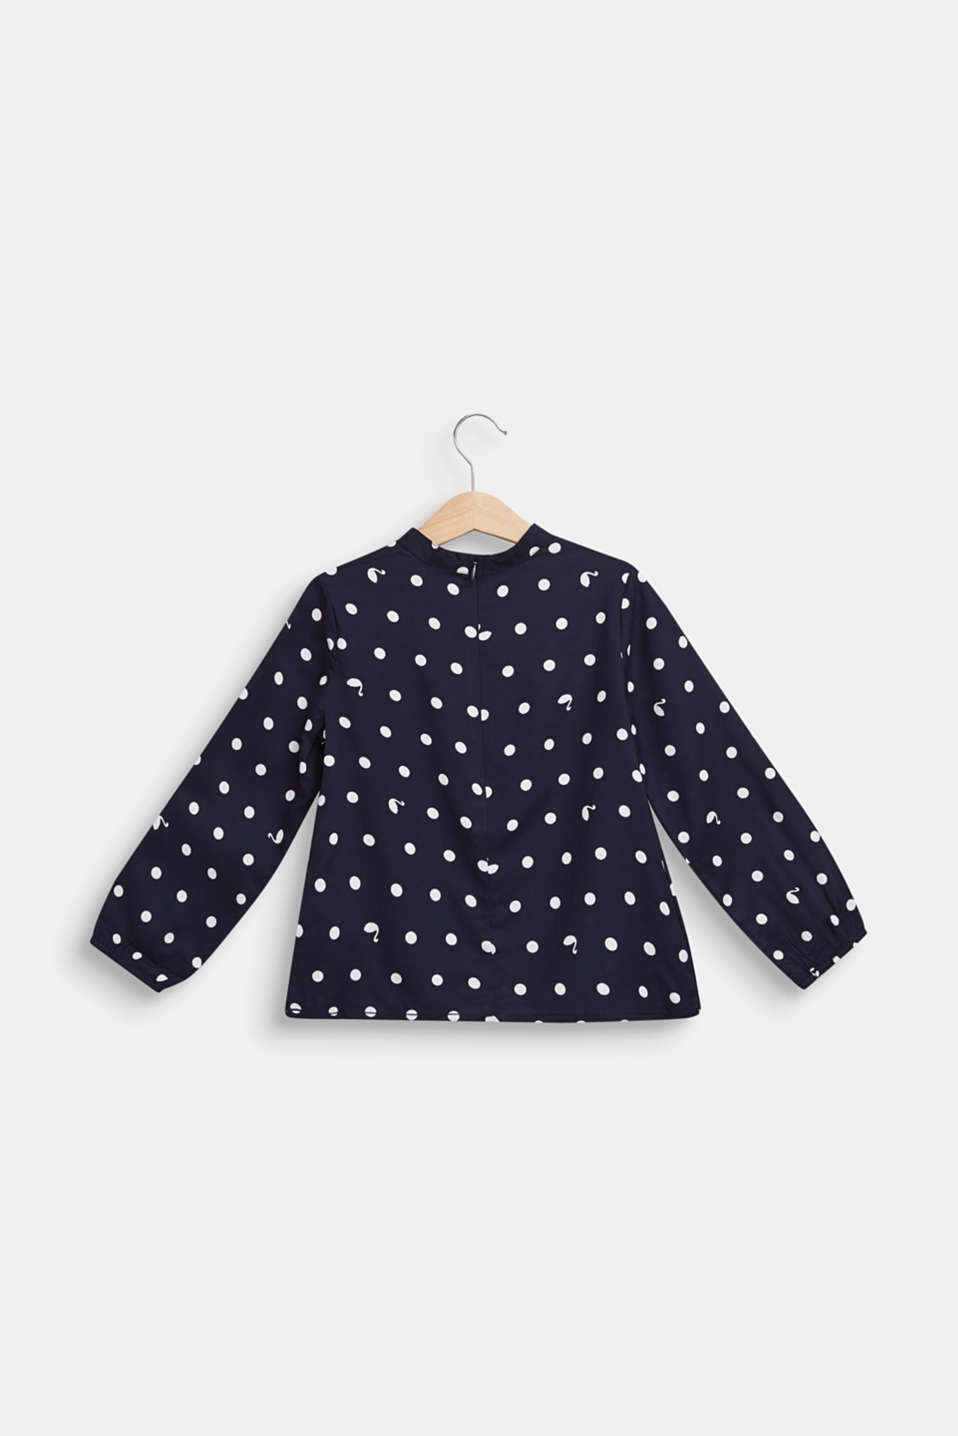 Blouse with a polka dot print and a band collar, NAVY BLUE, detail image number 1